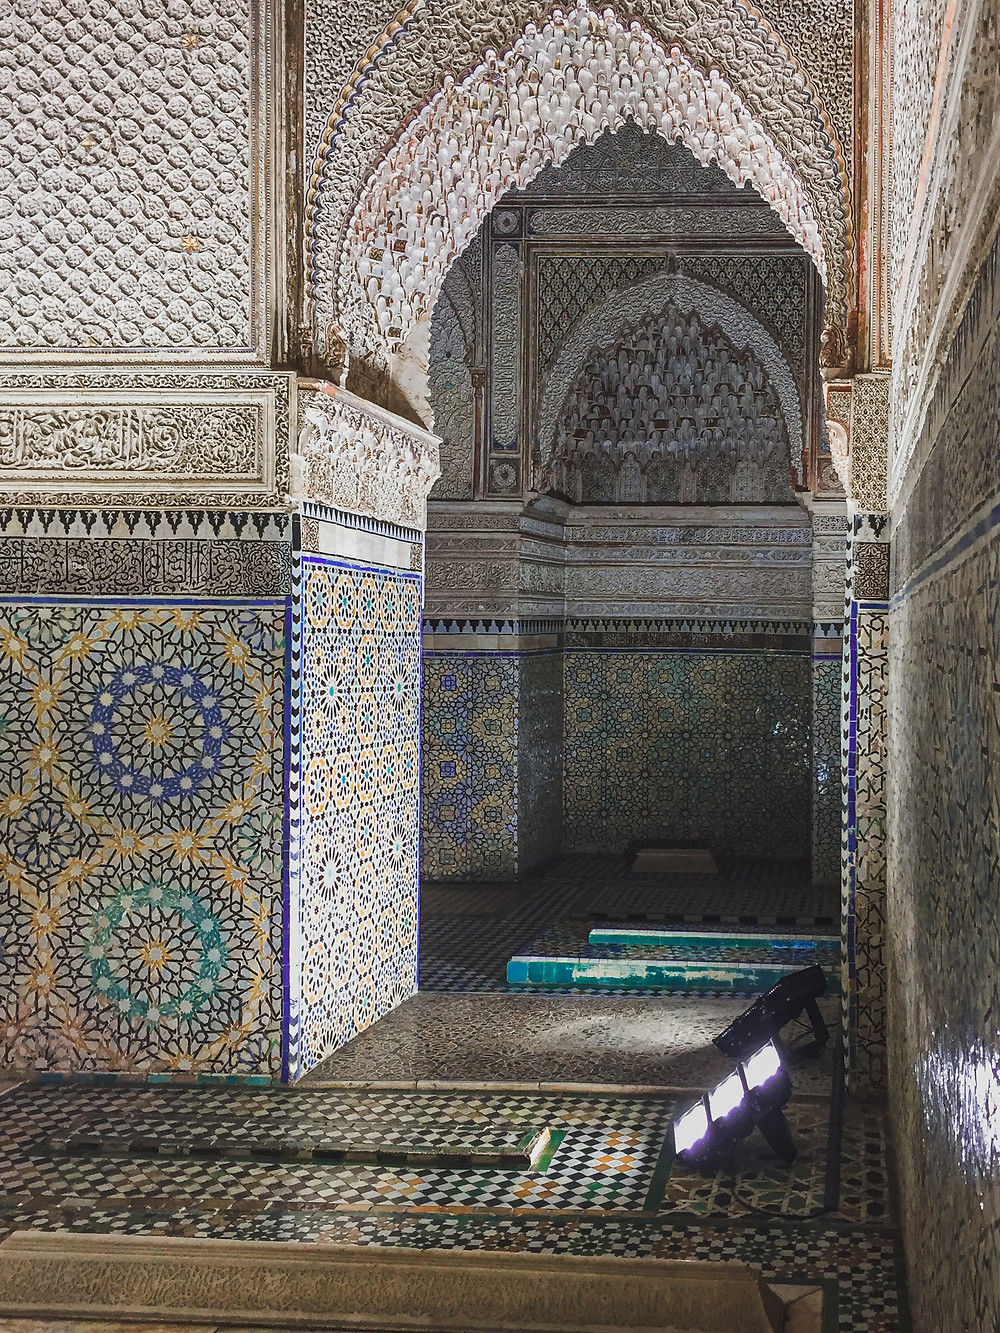 Moroccan architectural detail and vibrant patterned tiles of the Saadian Tombs | RollingBear Travels